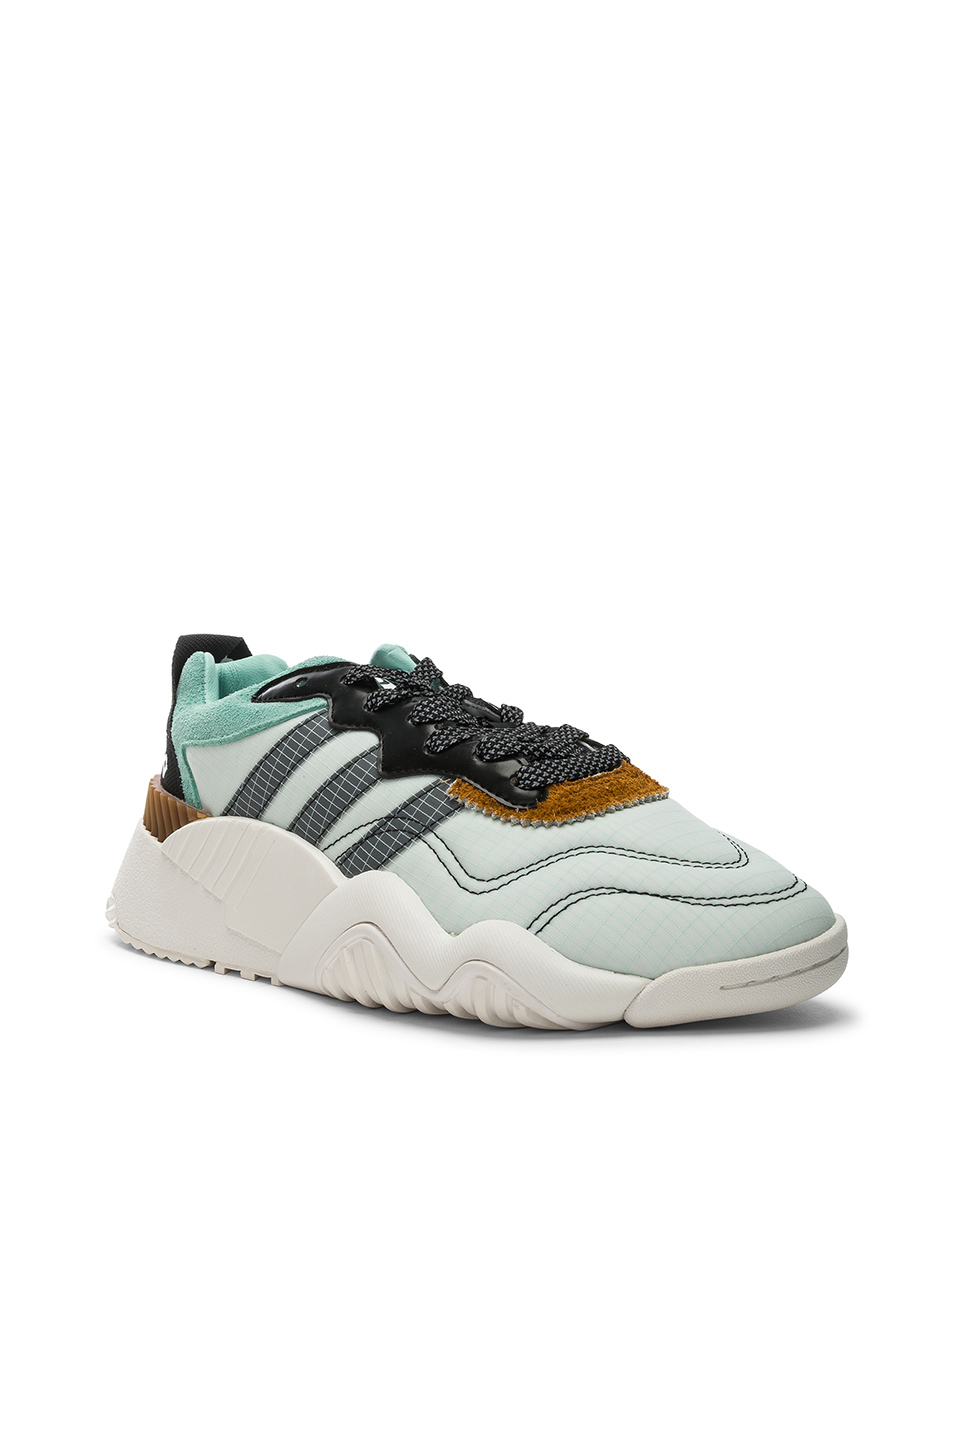 3c6ad510553139 Buy Original adidas by Alexander Wang Turnout Trainer at Indonesia ...